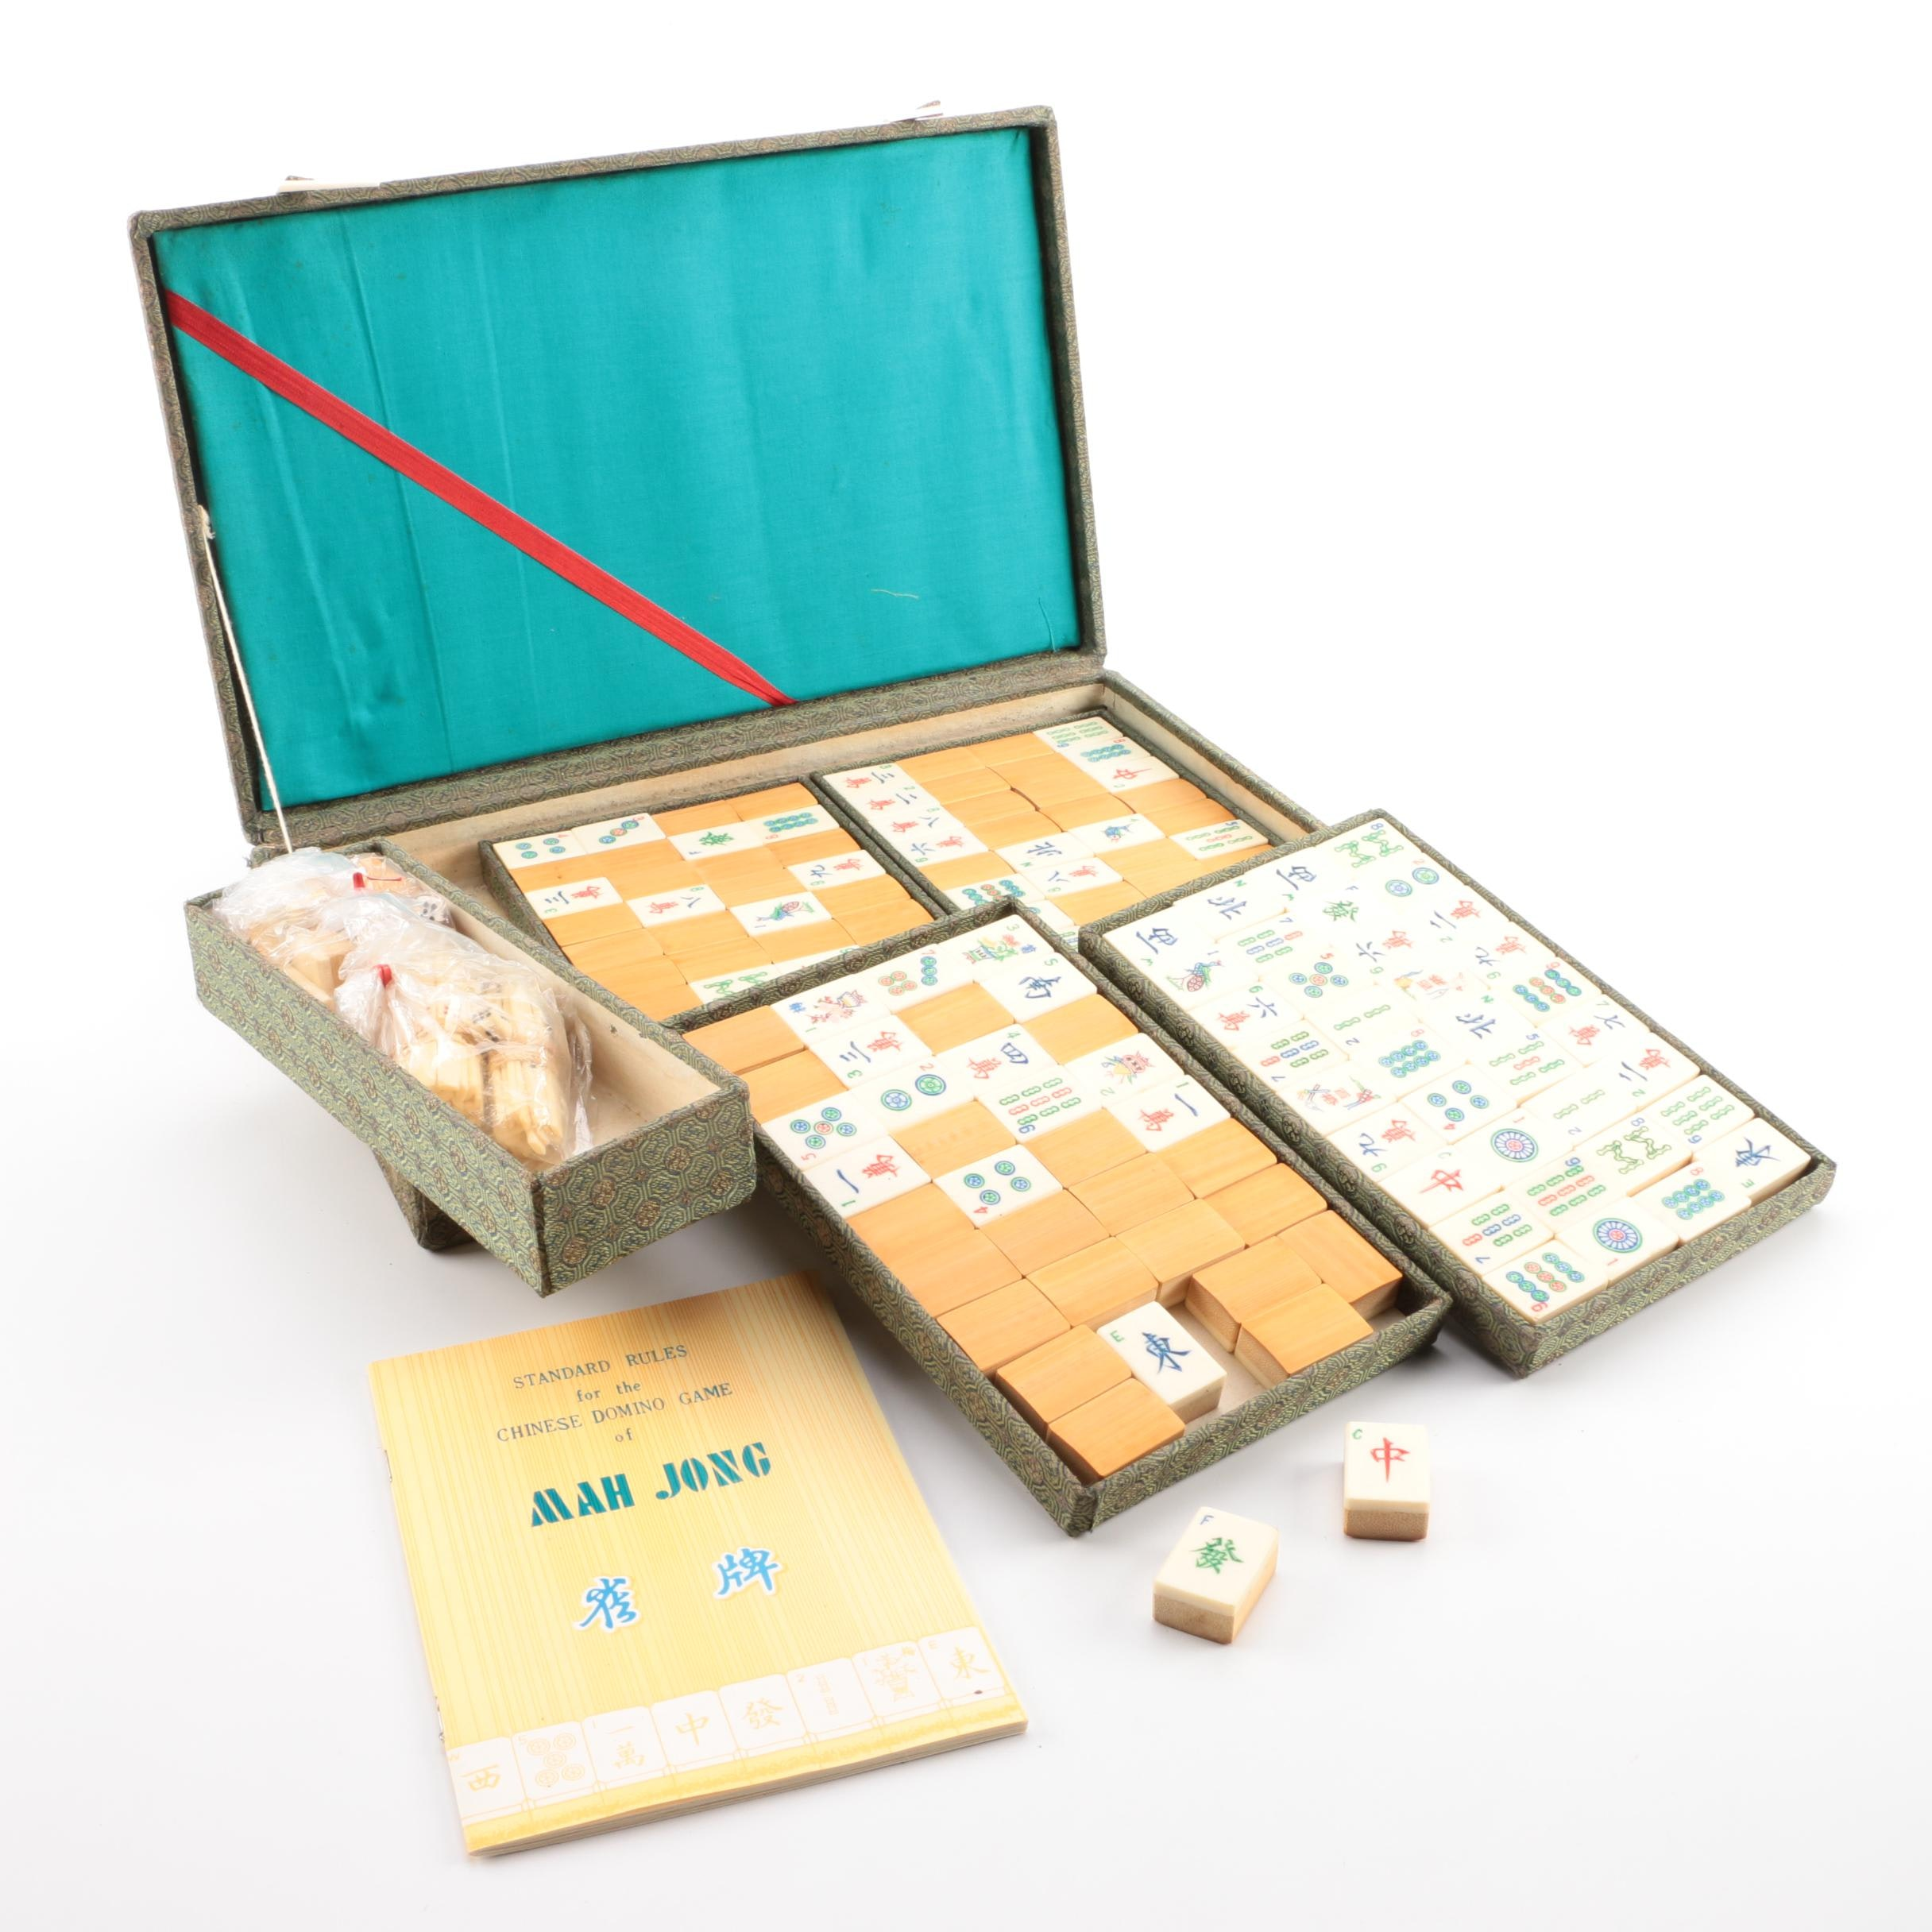 Vintage Mah Jong Set with Case